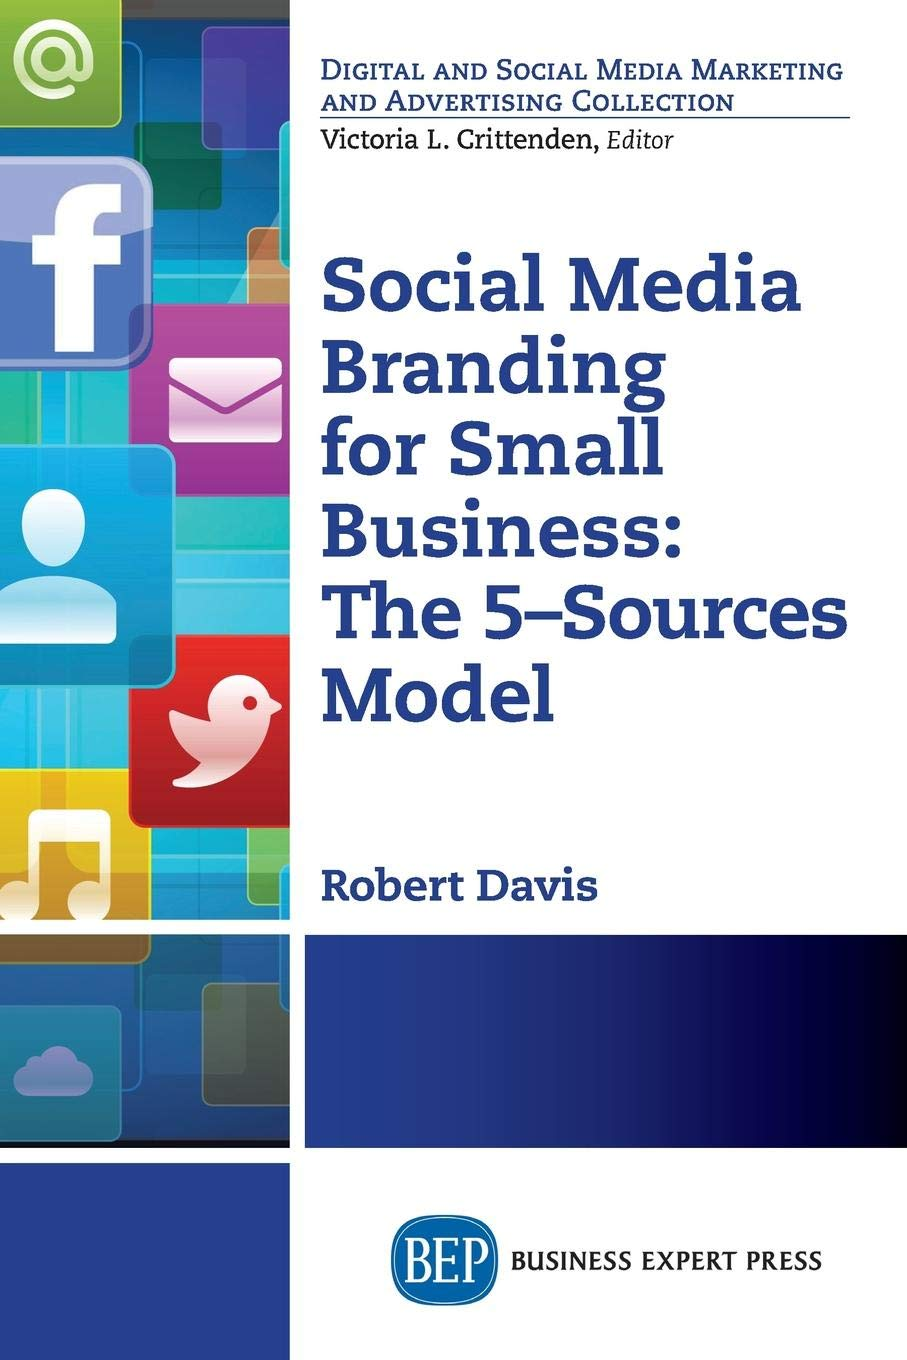 Social Media Branding For Small Businesses (Digital and Social Media Marketing and Advertising Collection) PDF